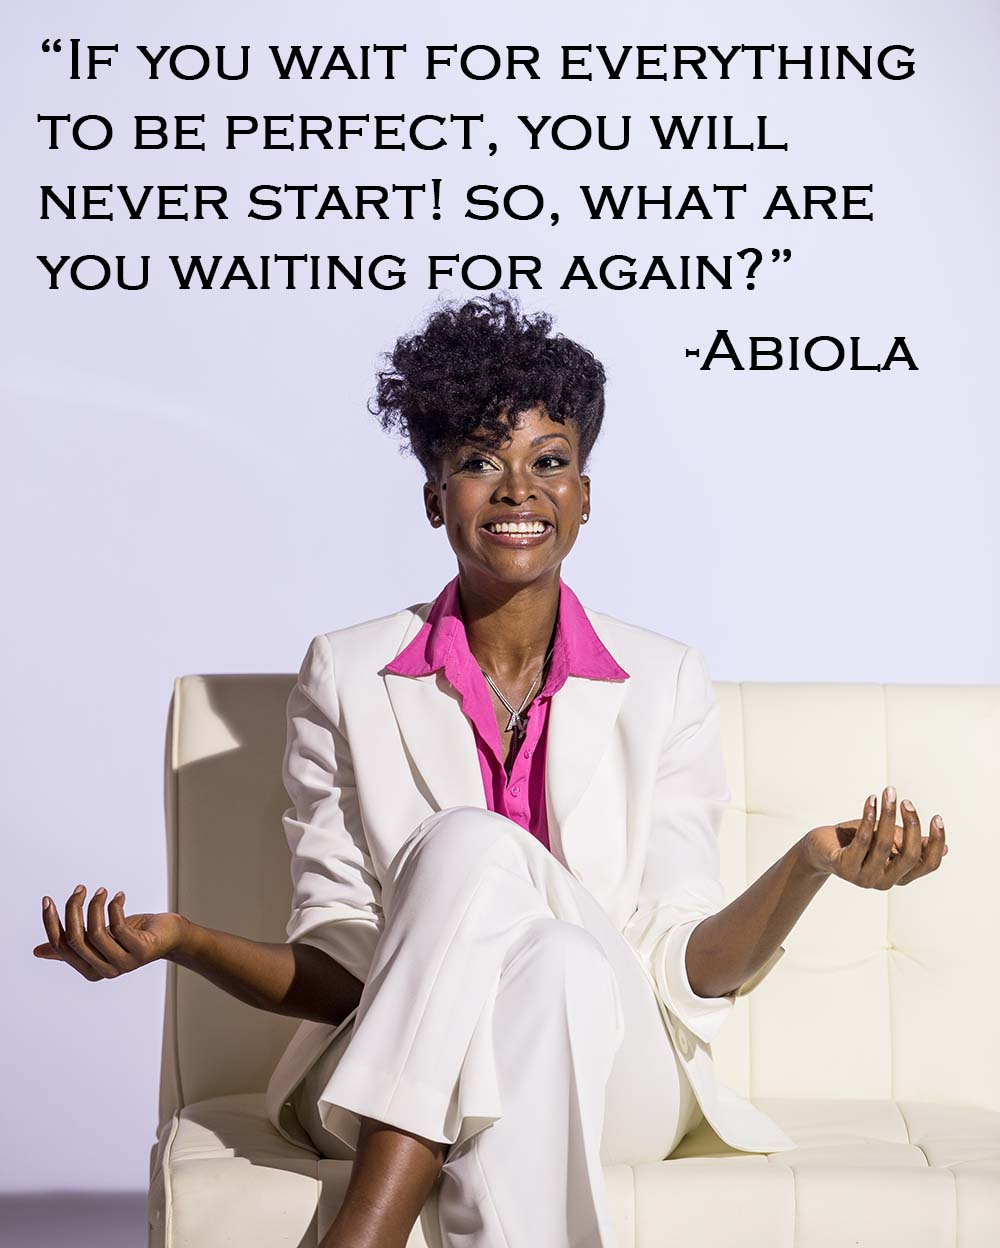 Abiola Abrams - spiritual business plan quotes